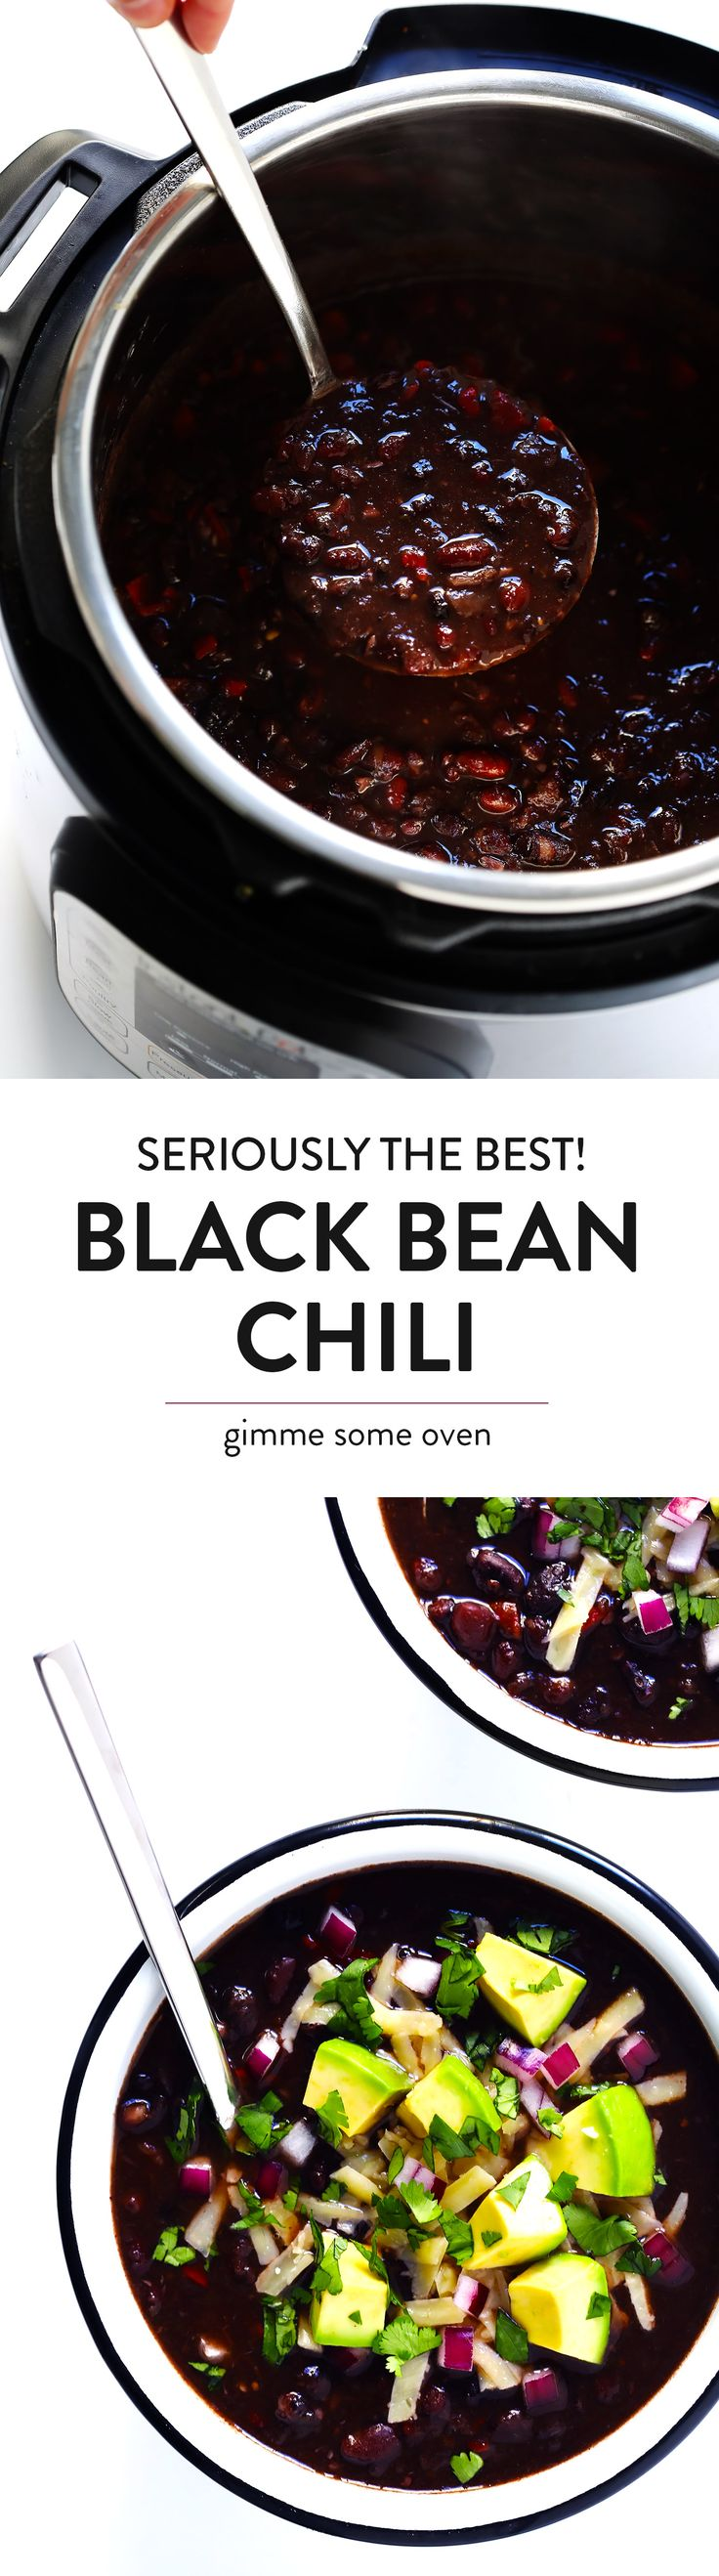 The BEST Black Bean Chili recipe - requires entire jar of salsa verde to make from scratch, maybe add ground turkey and chorizo (vegan as is)